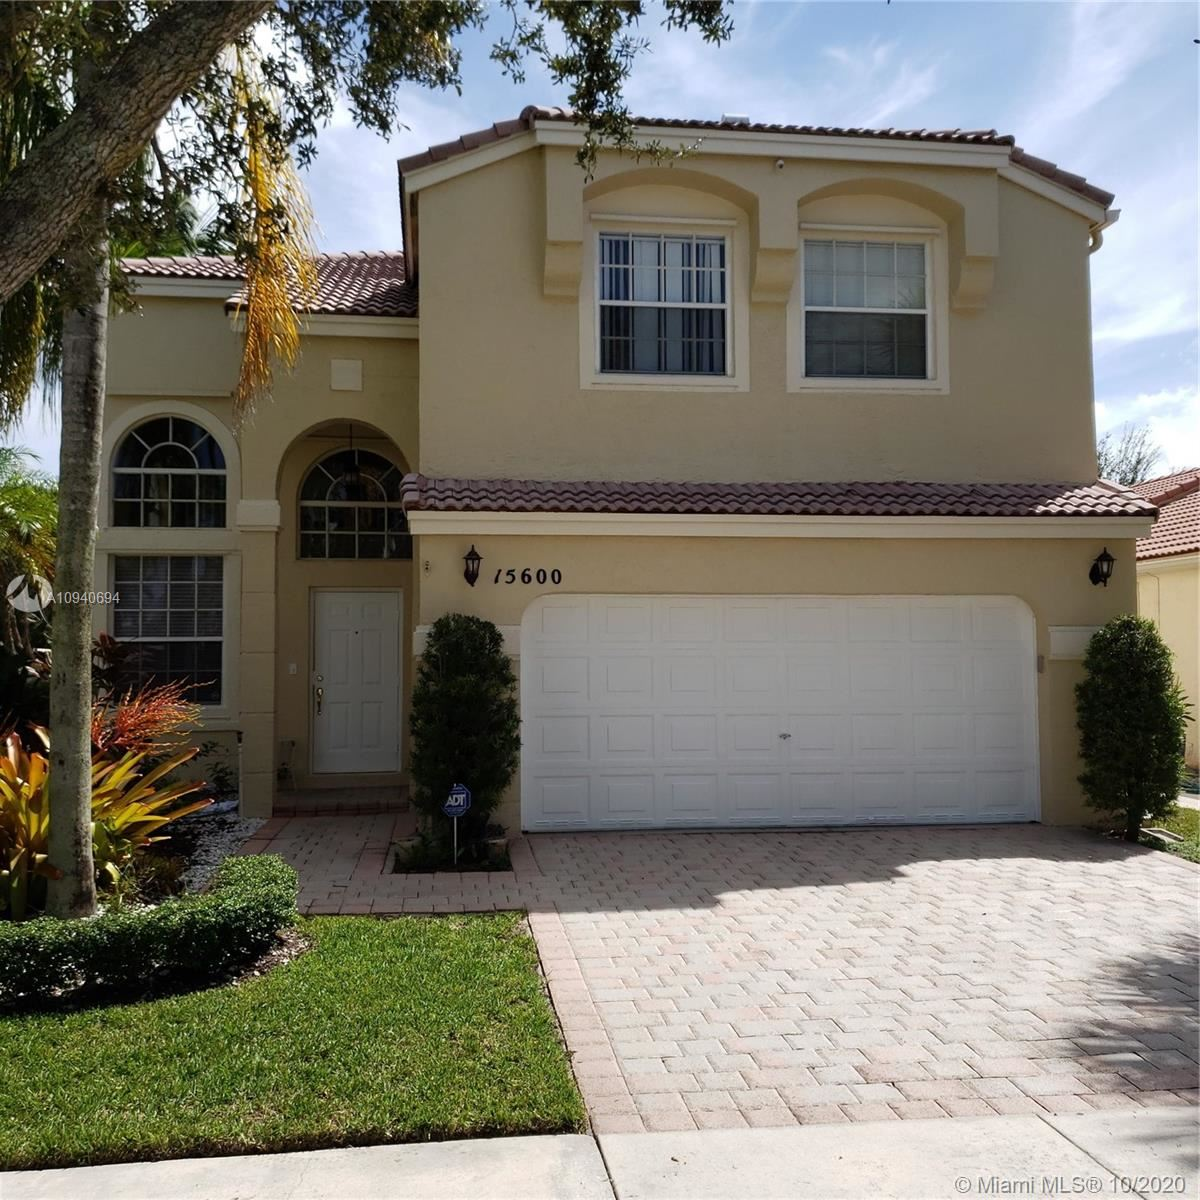 15600 NW 14th Ct, Pembroke Pines, FL 33028 - #: A10940694